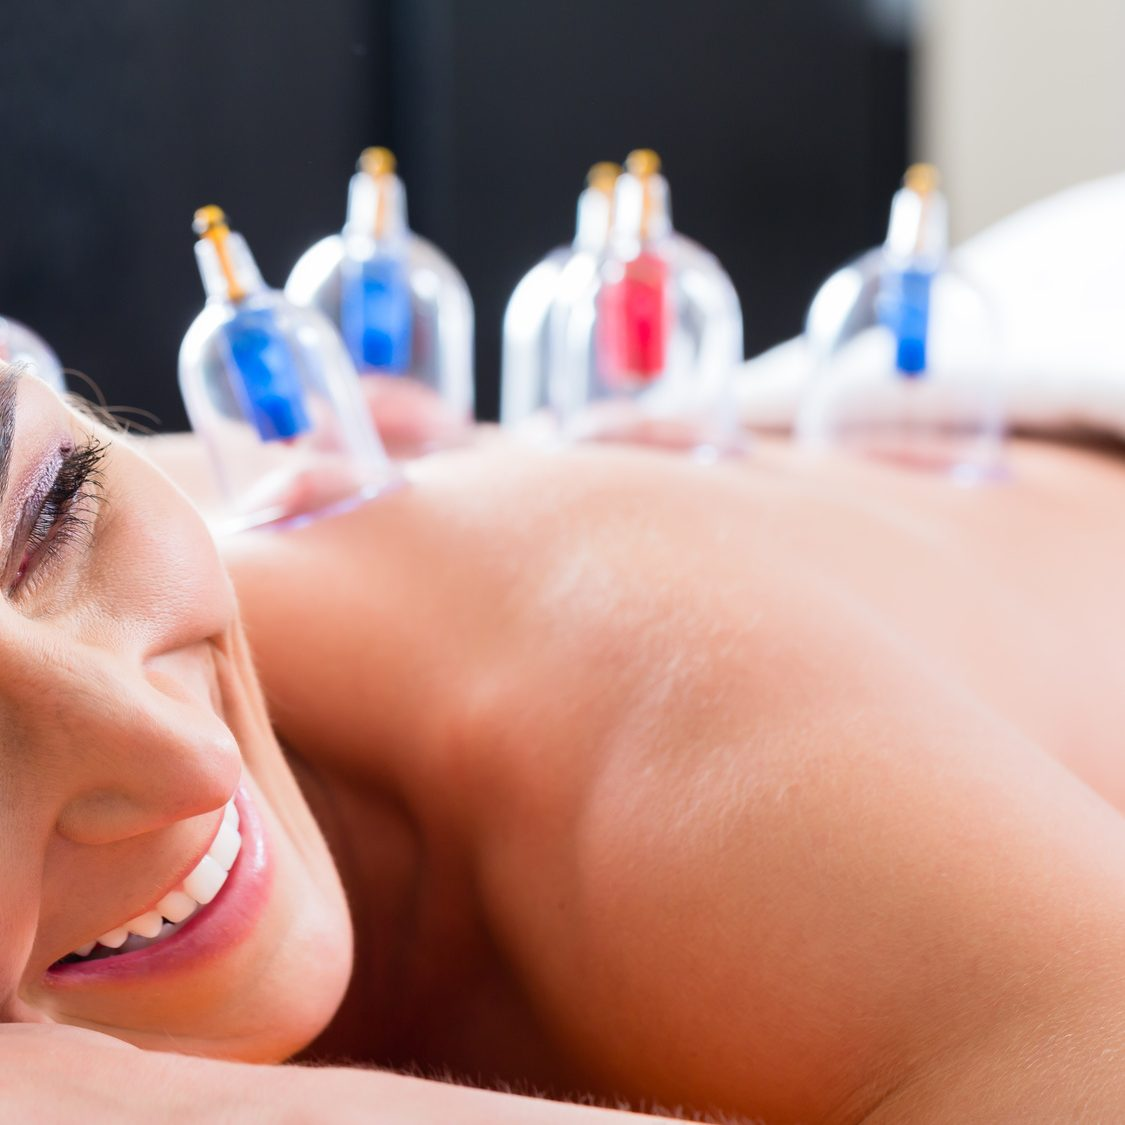 Alternative practitioner cupping woman in course of alternative therapy treatment